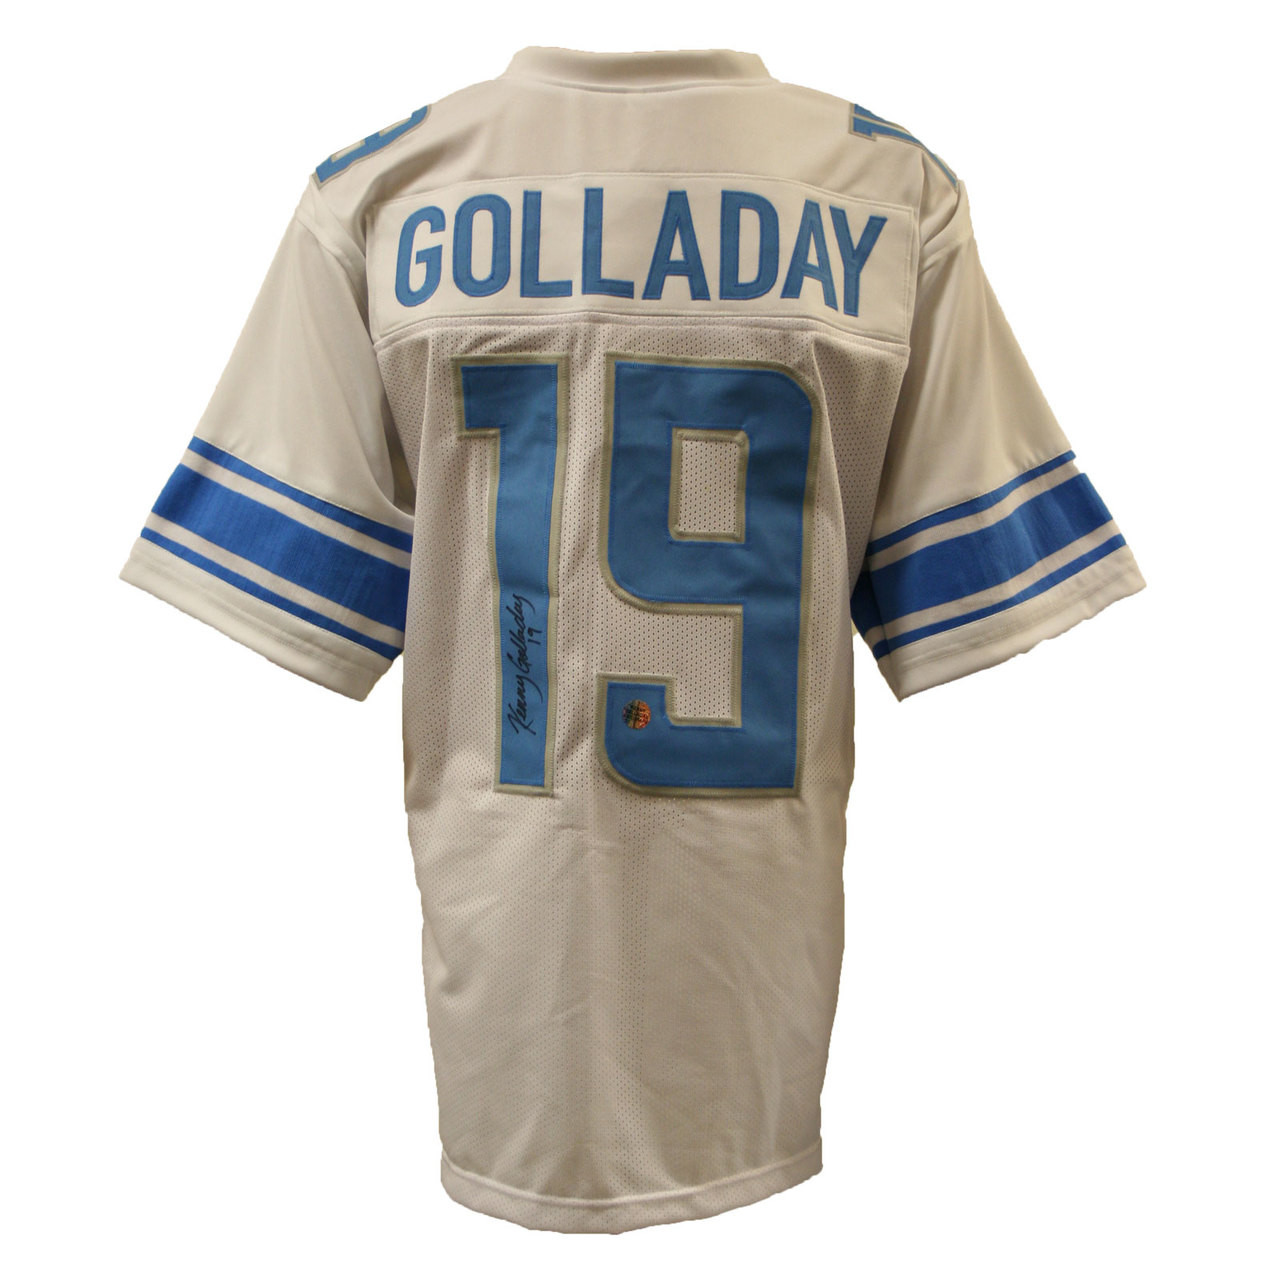 online retailer 1113b e984c Kenny Golladay Autographed Custom White Football Jersey